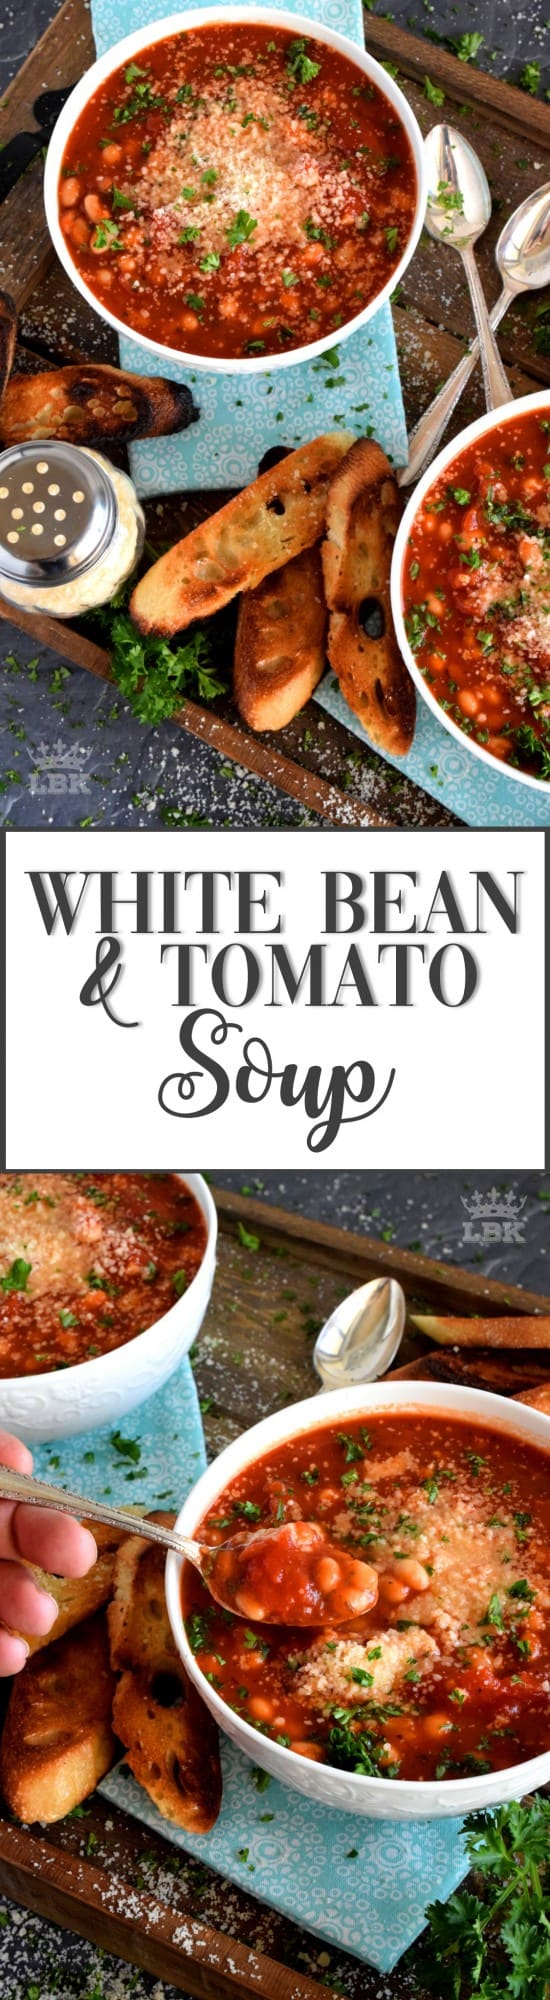 White Bean and Tomato Soup - Tomato soup is a classic and a family favourite, but this version adds more flavour and more heartiness with white beans and cheese!#tomato #soup #recipe #canned #beans #parmesan #homemade